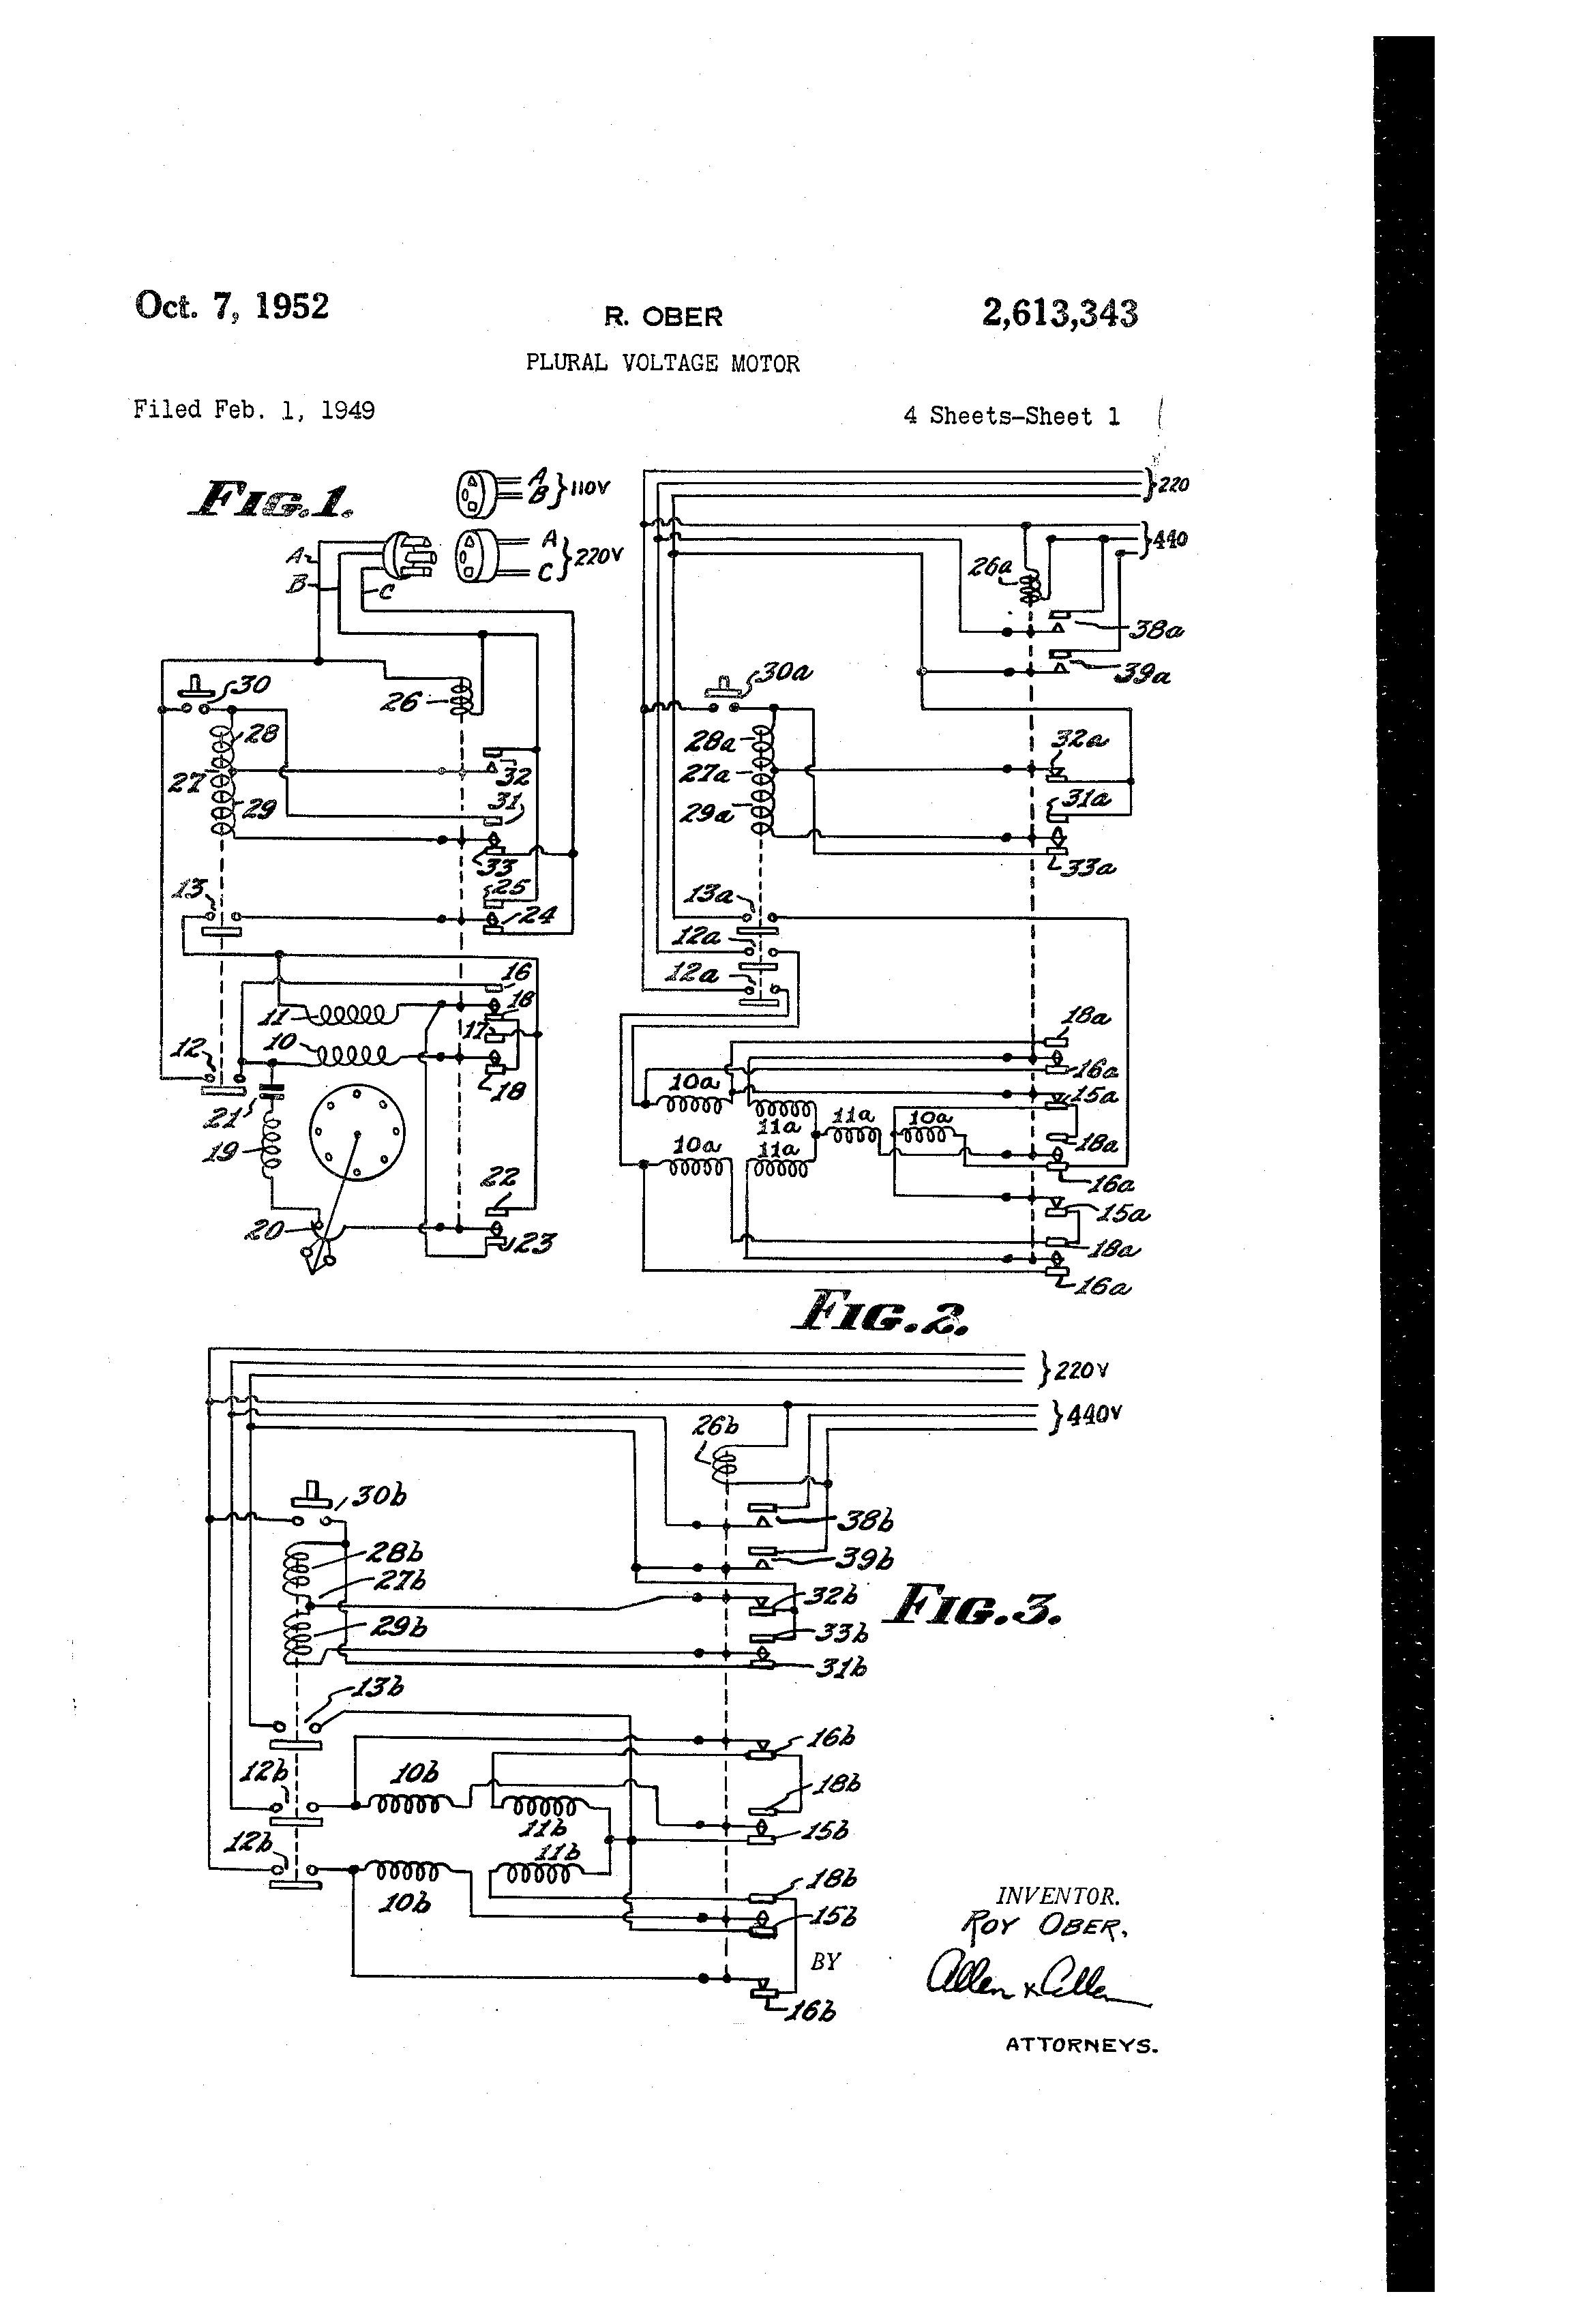 patent us2613343 - plural voltage motor